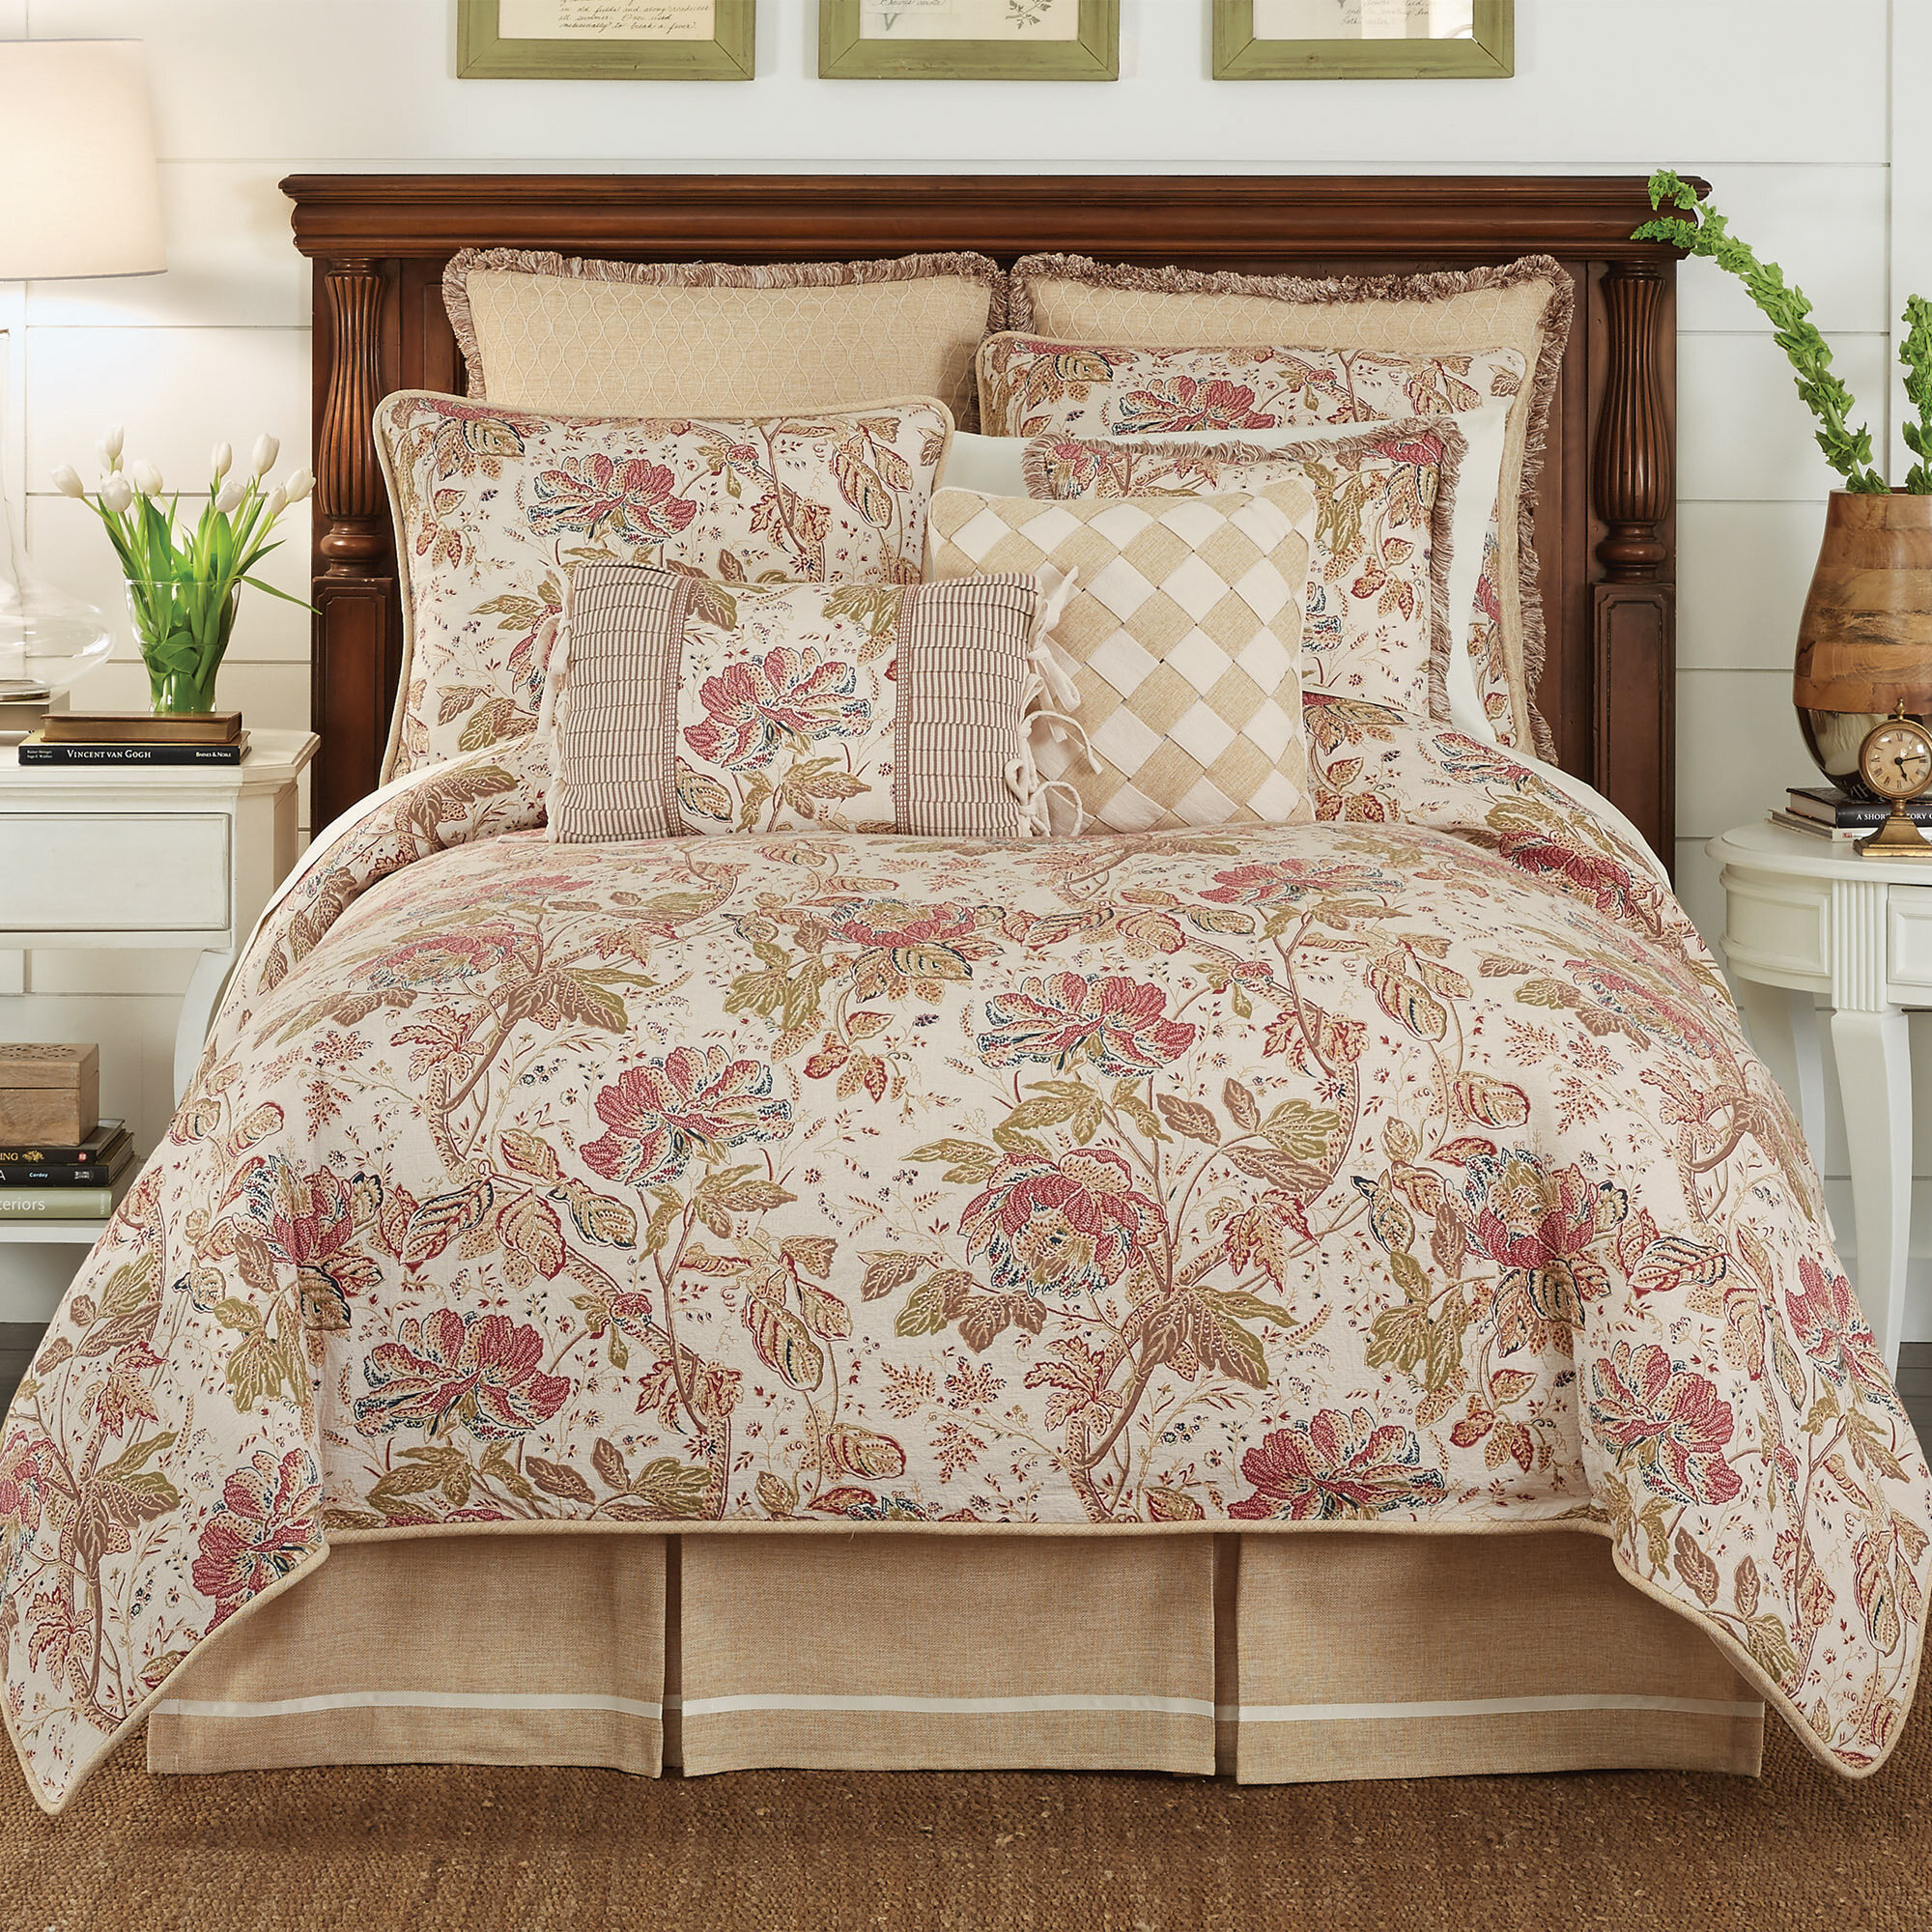 free callisto bath shipping today croscill overstock bedding product piece set sets jacquard comforter